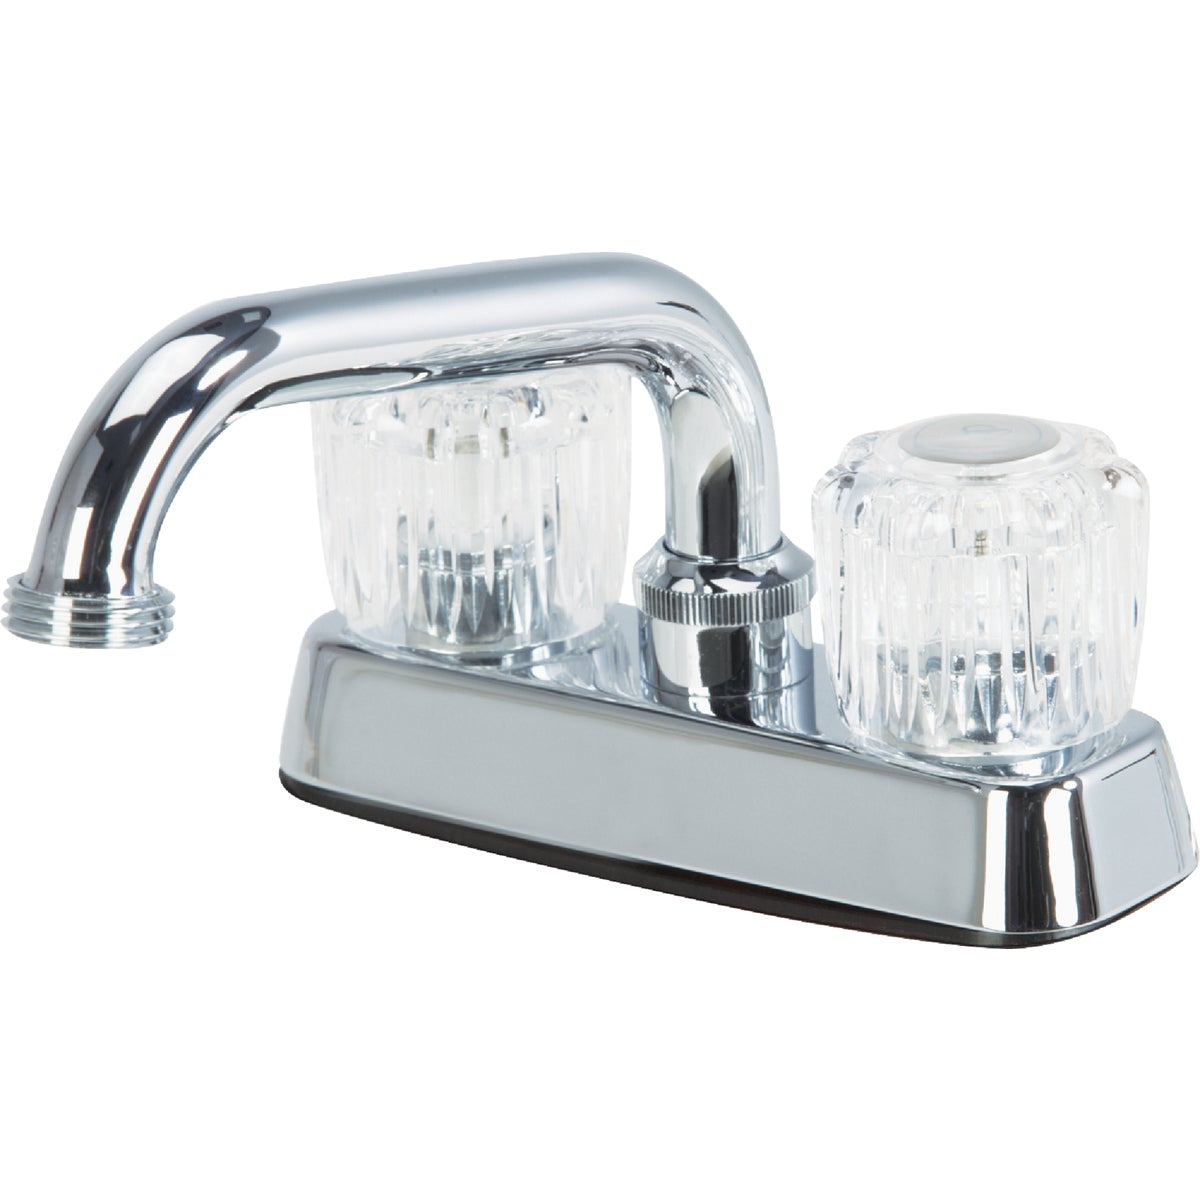 CHR LAUNDRY FAUCET - FL020000CP by Globe Union